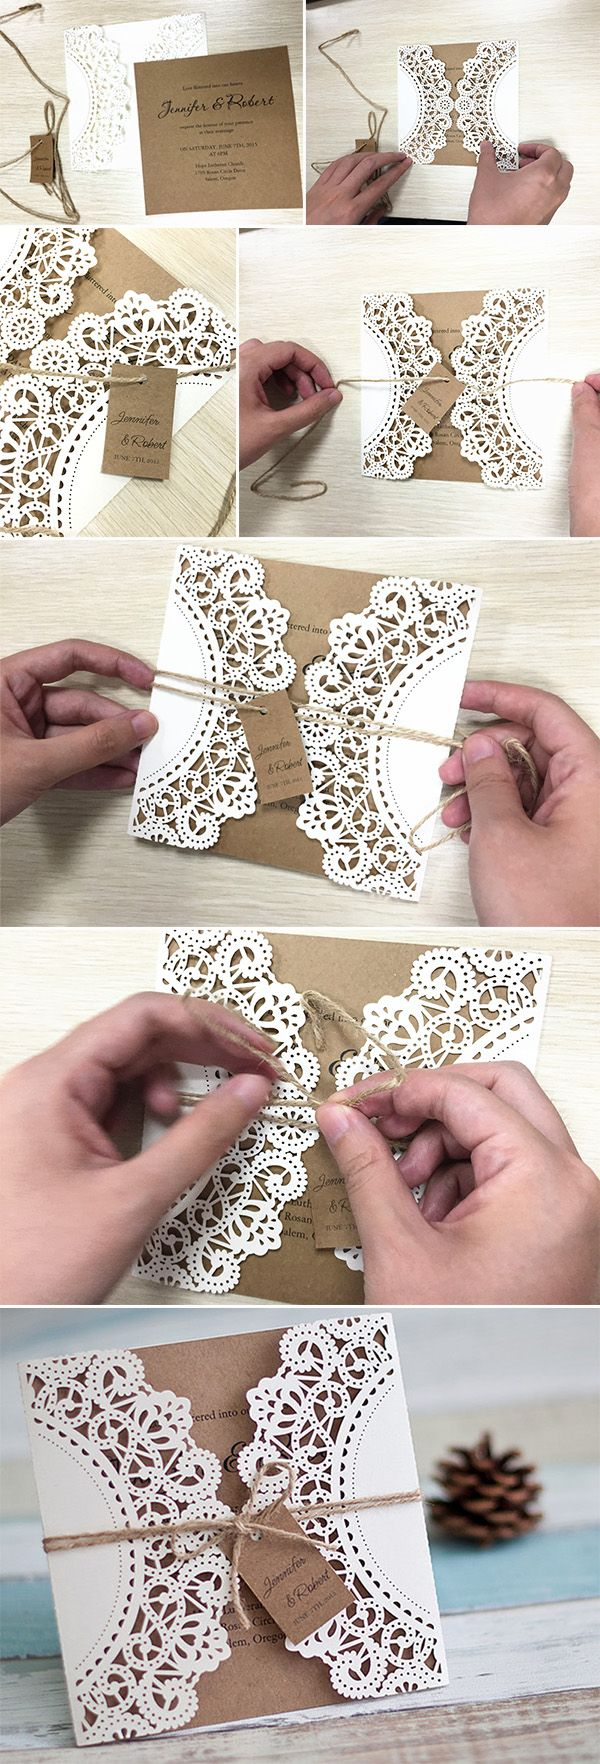 lace and burlap diy laser cut rustic wedding invitations for country wedding ideas